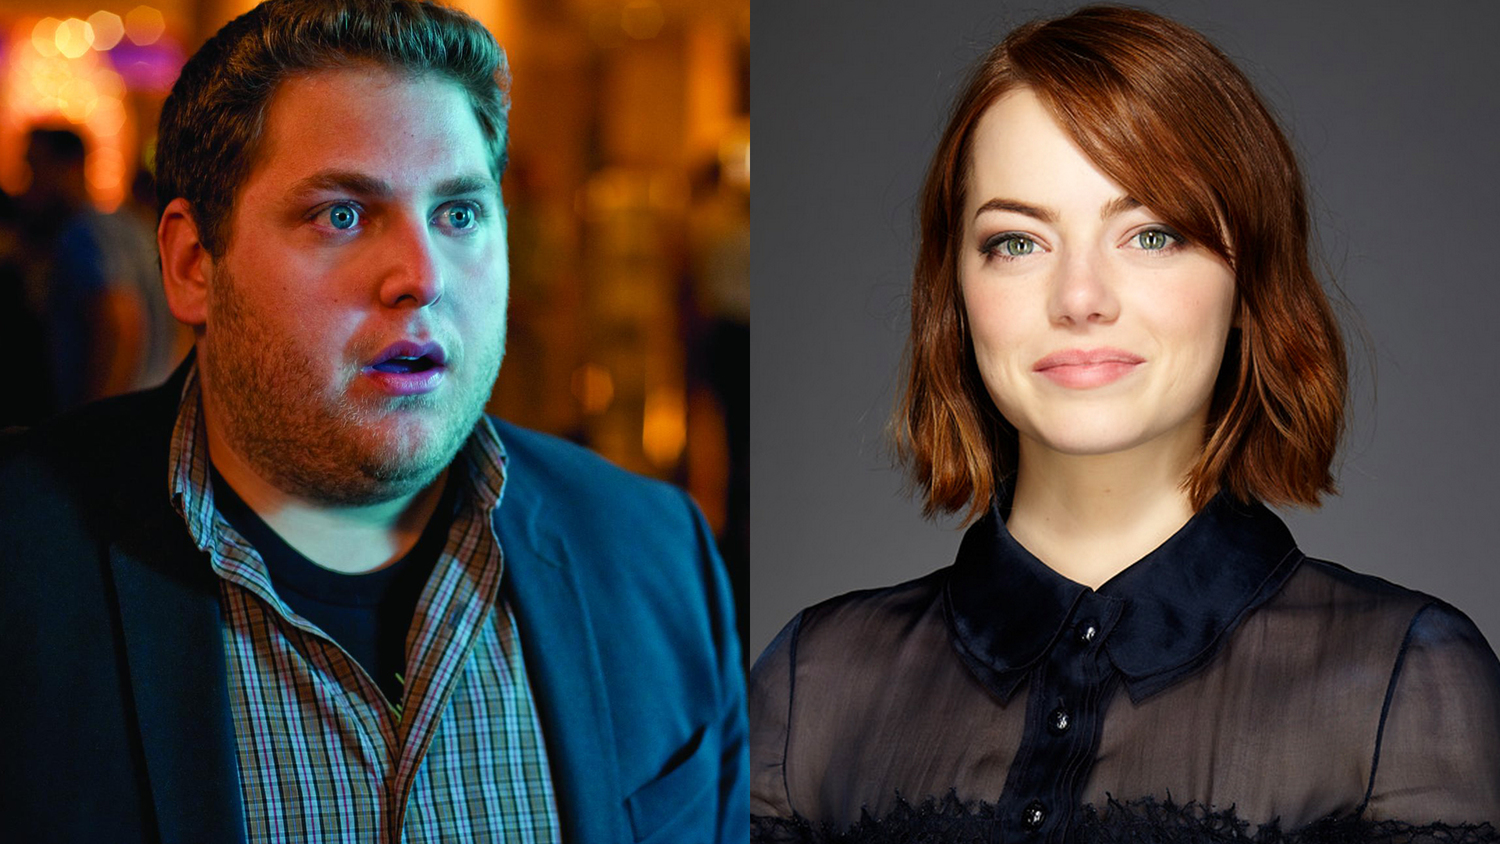 Emma Stone-Jonah Hill Series 'Maniac' Sets Shoot Date | TV ... Emma Stone Maniac